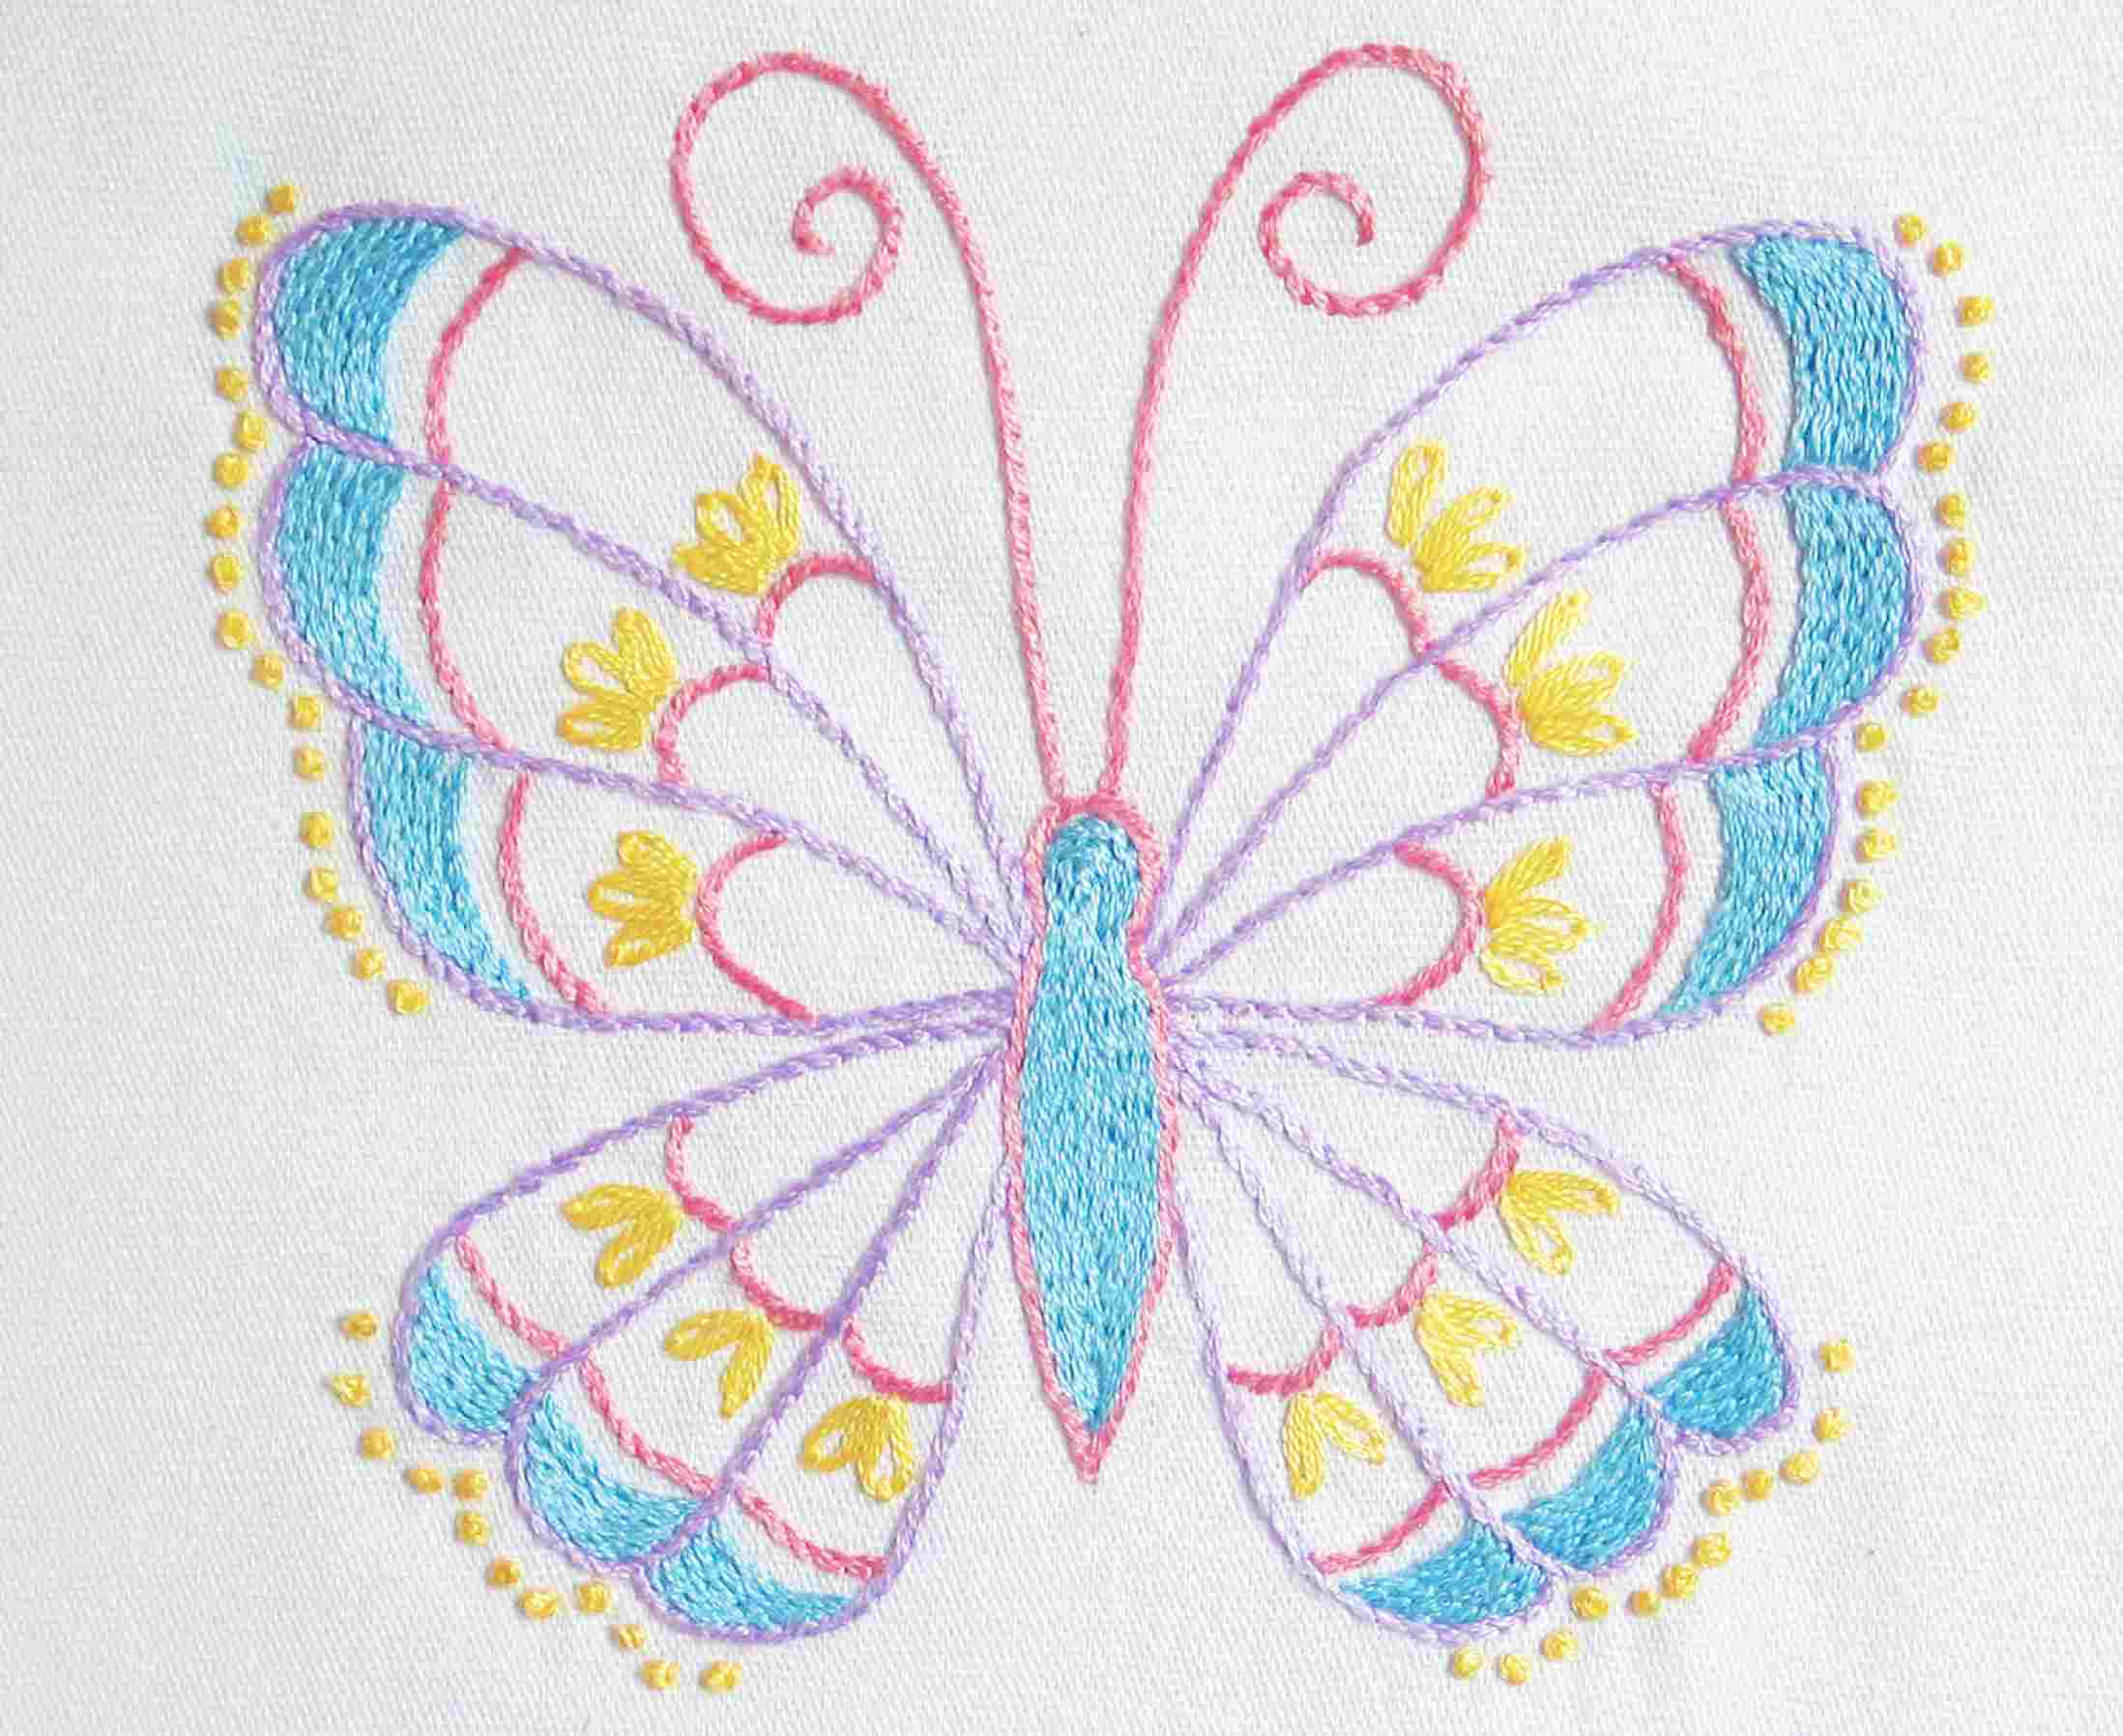 Ribbon Embroidery Patterns Free Our Top 25 Free Embroidery Designs